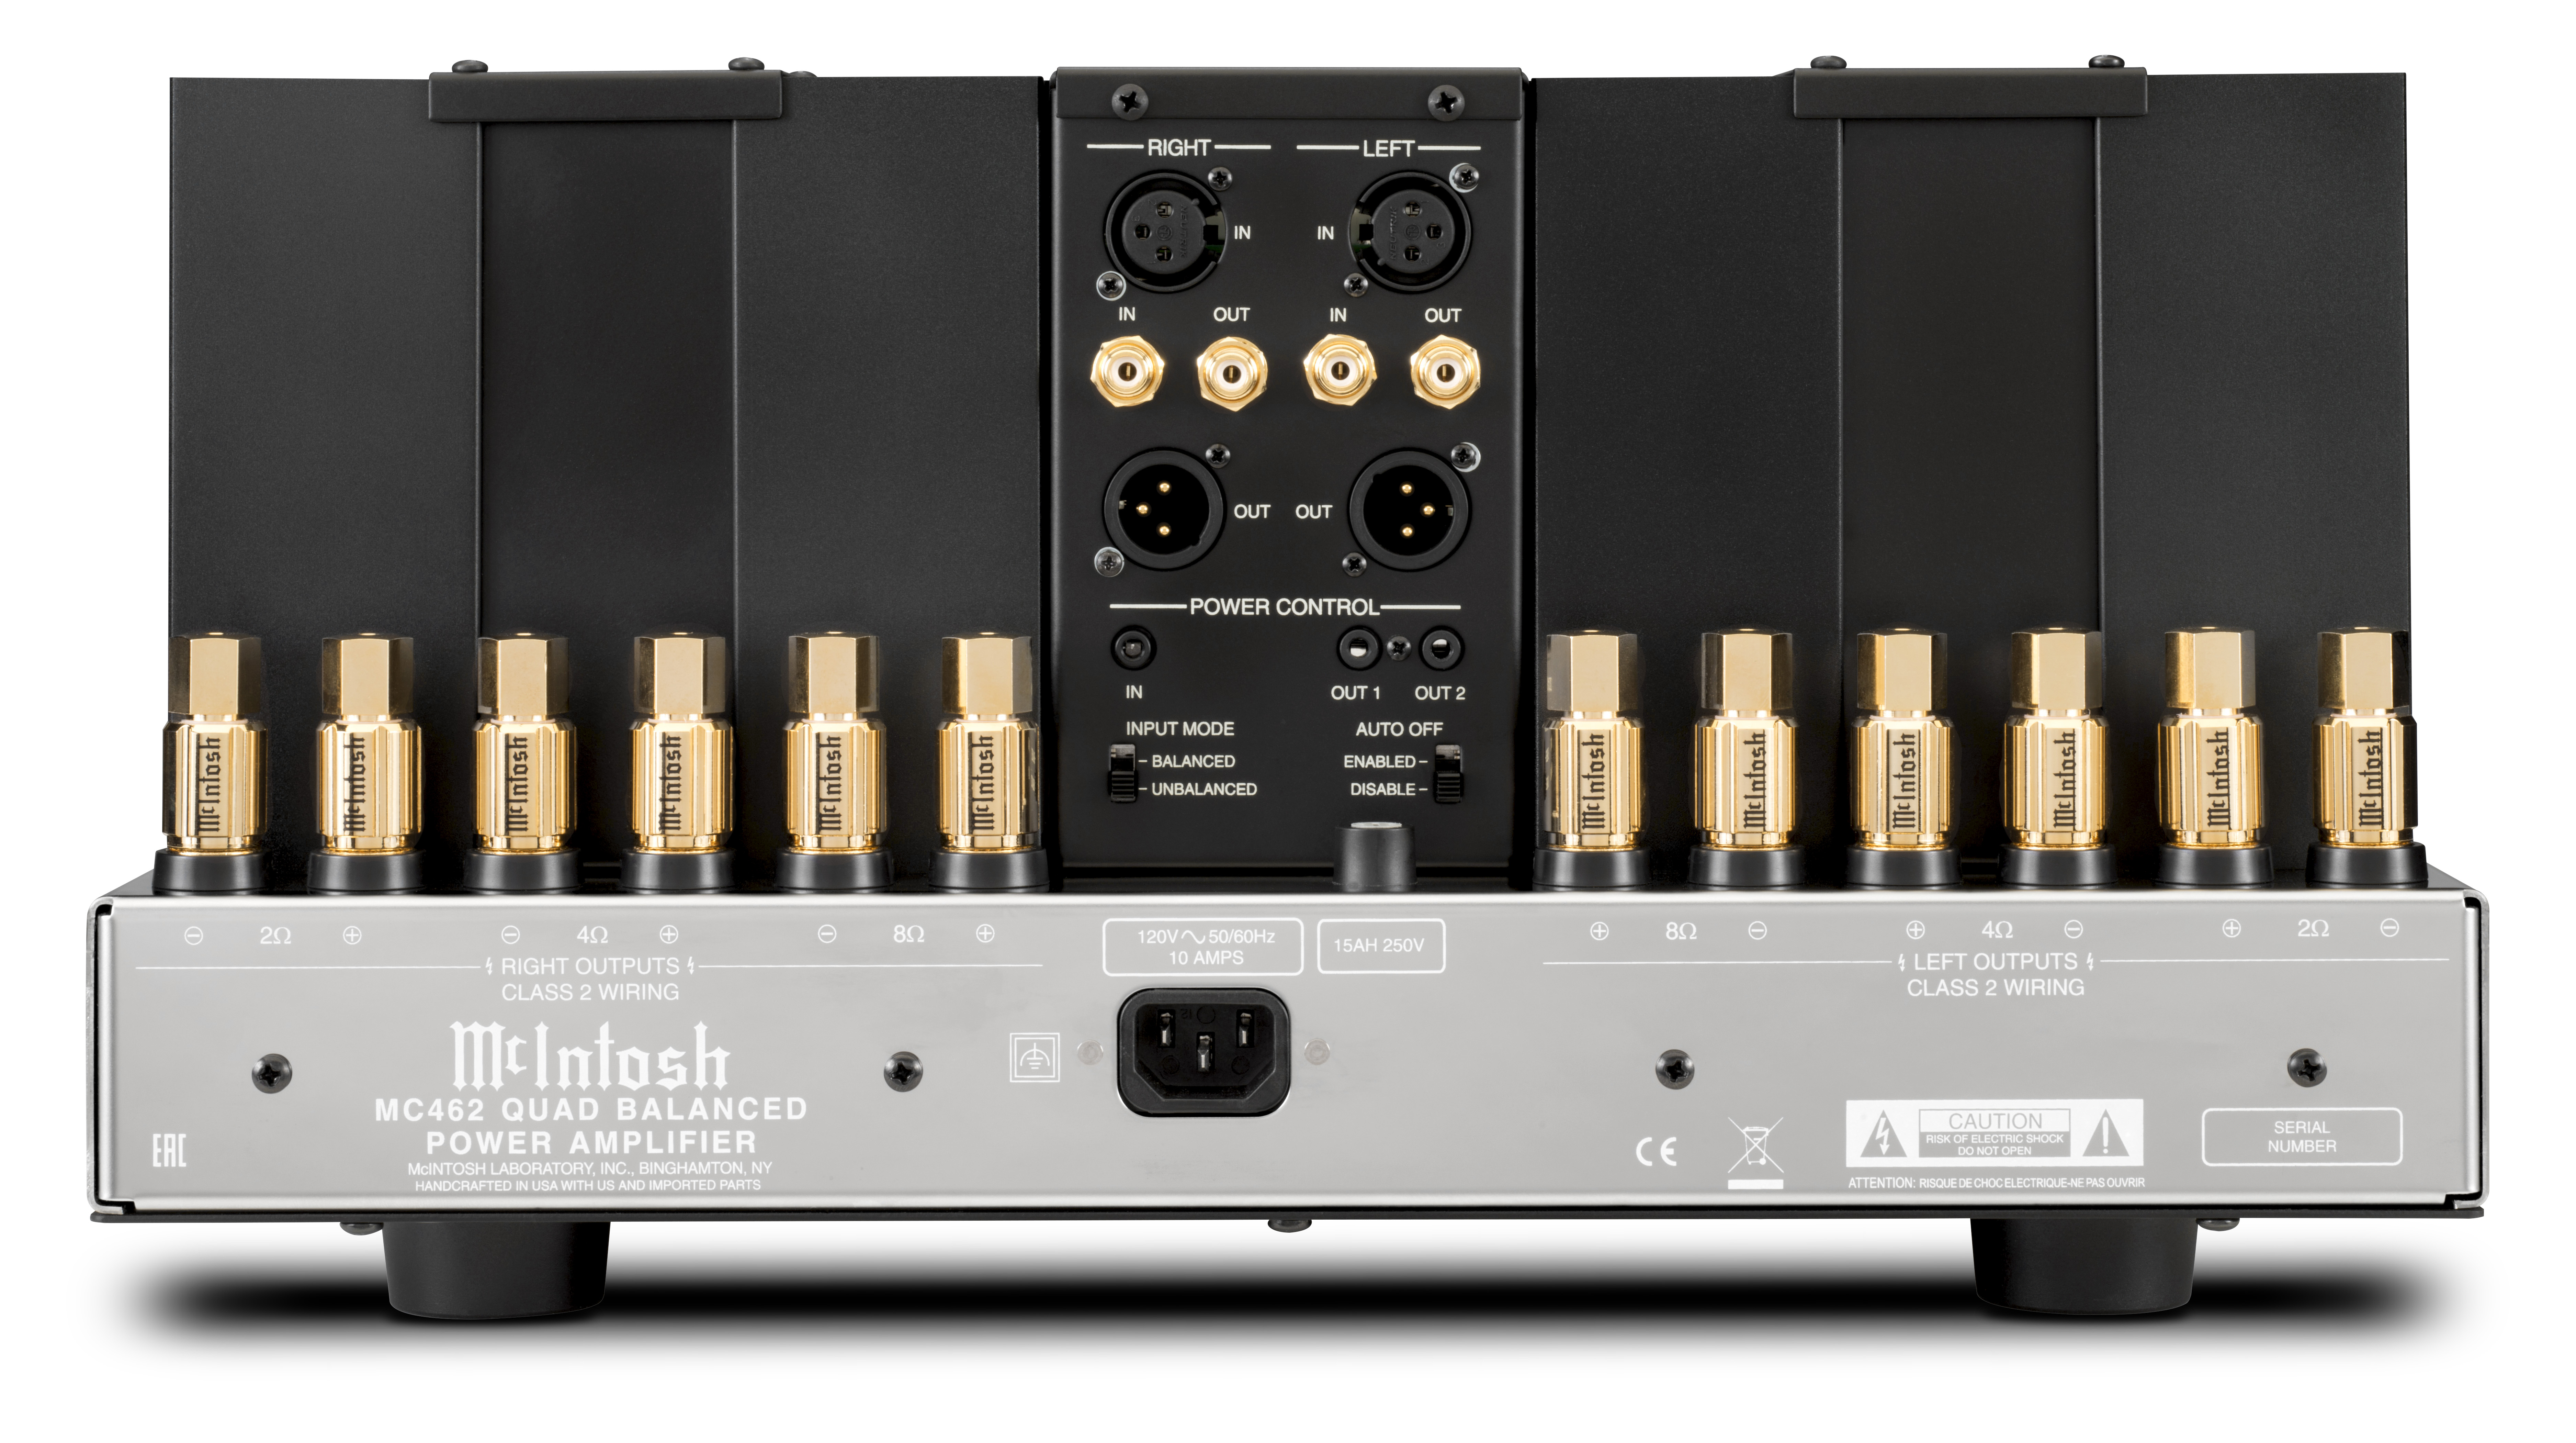 Mcintosh Mc462 Audio Lifestyle Amplifier Basics A Modern Stereo System Has Two Aesthetically The Retains All Hallmarks Of With Few Key Enhancements Front Panel Now Utilizes Direct Led